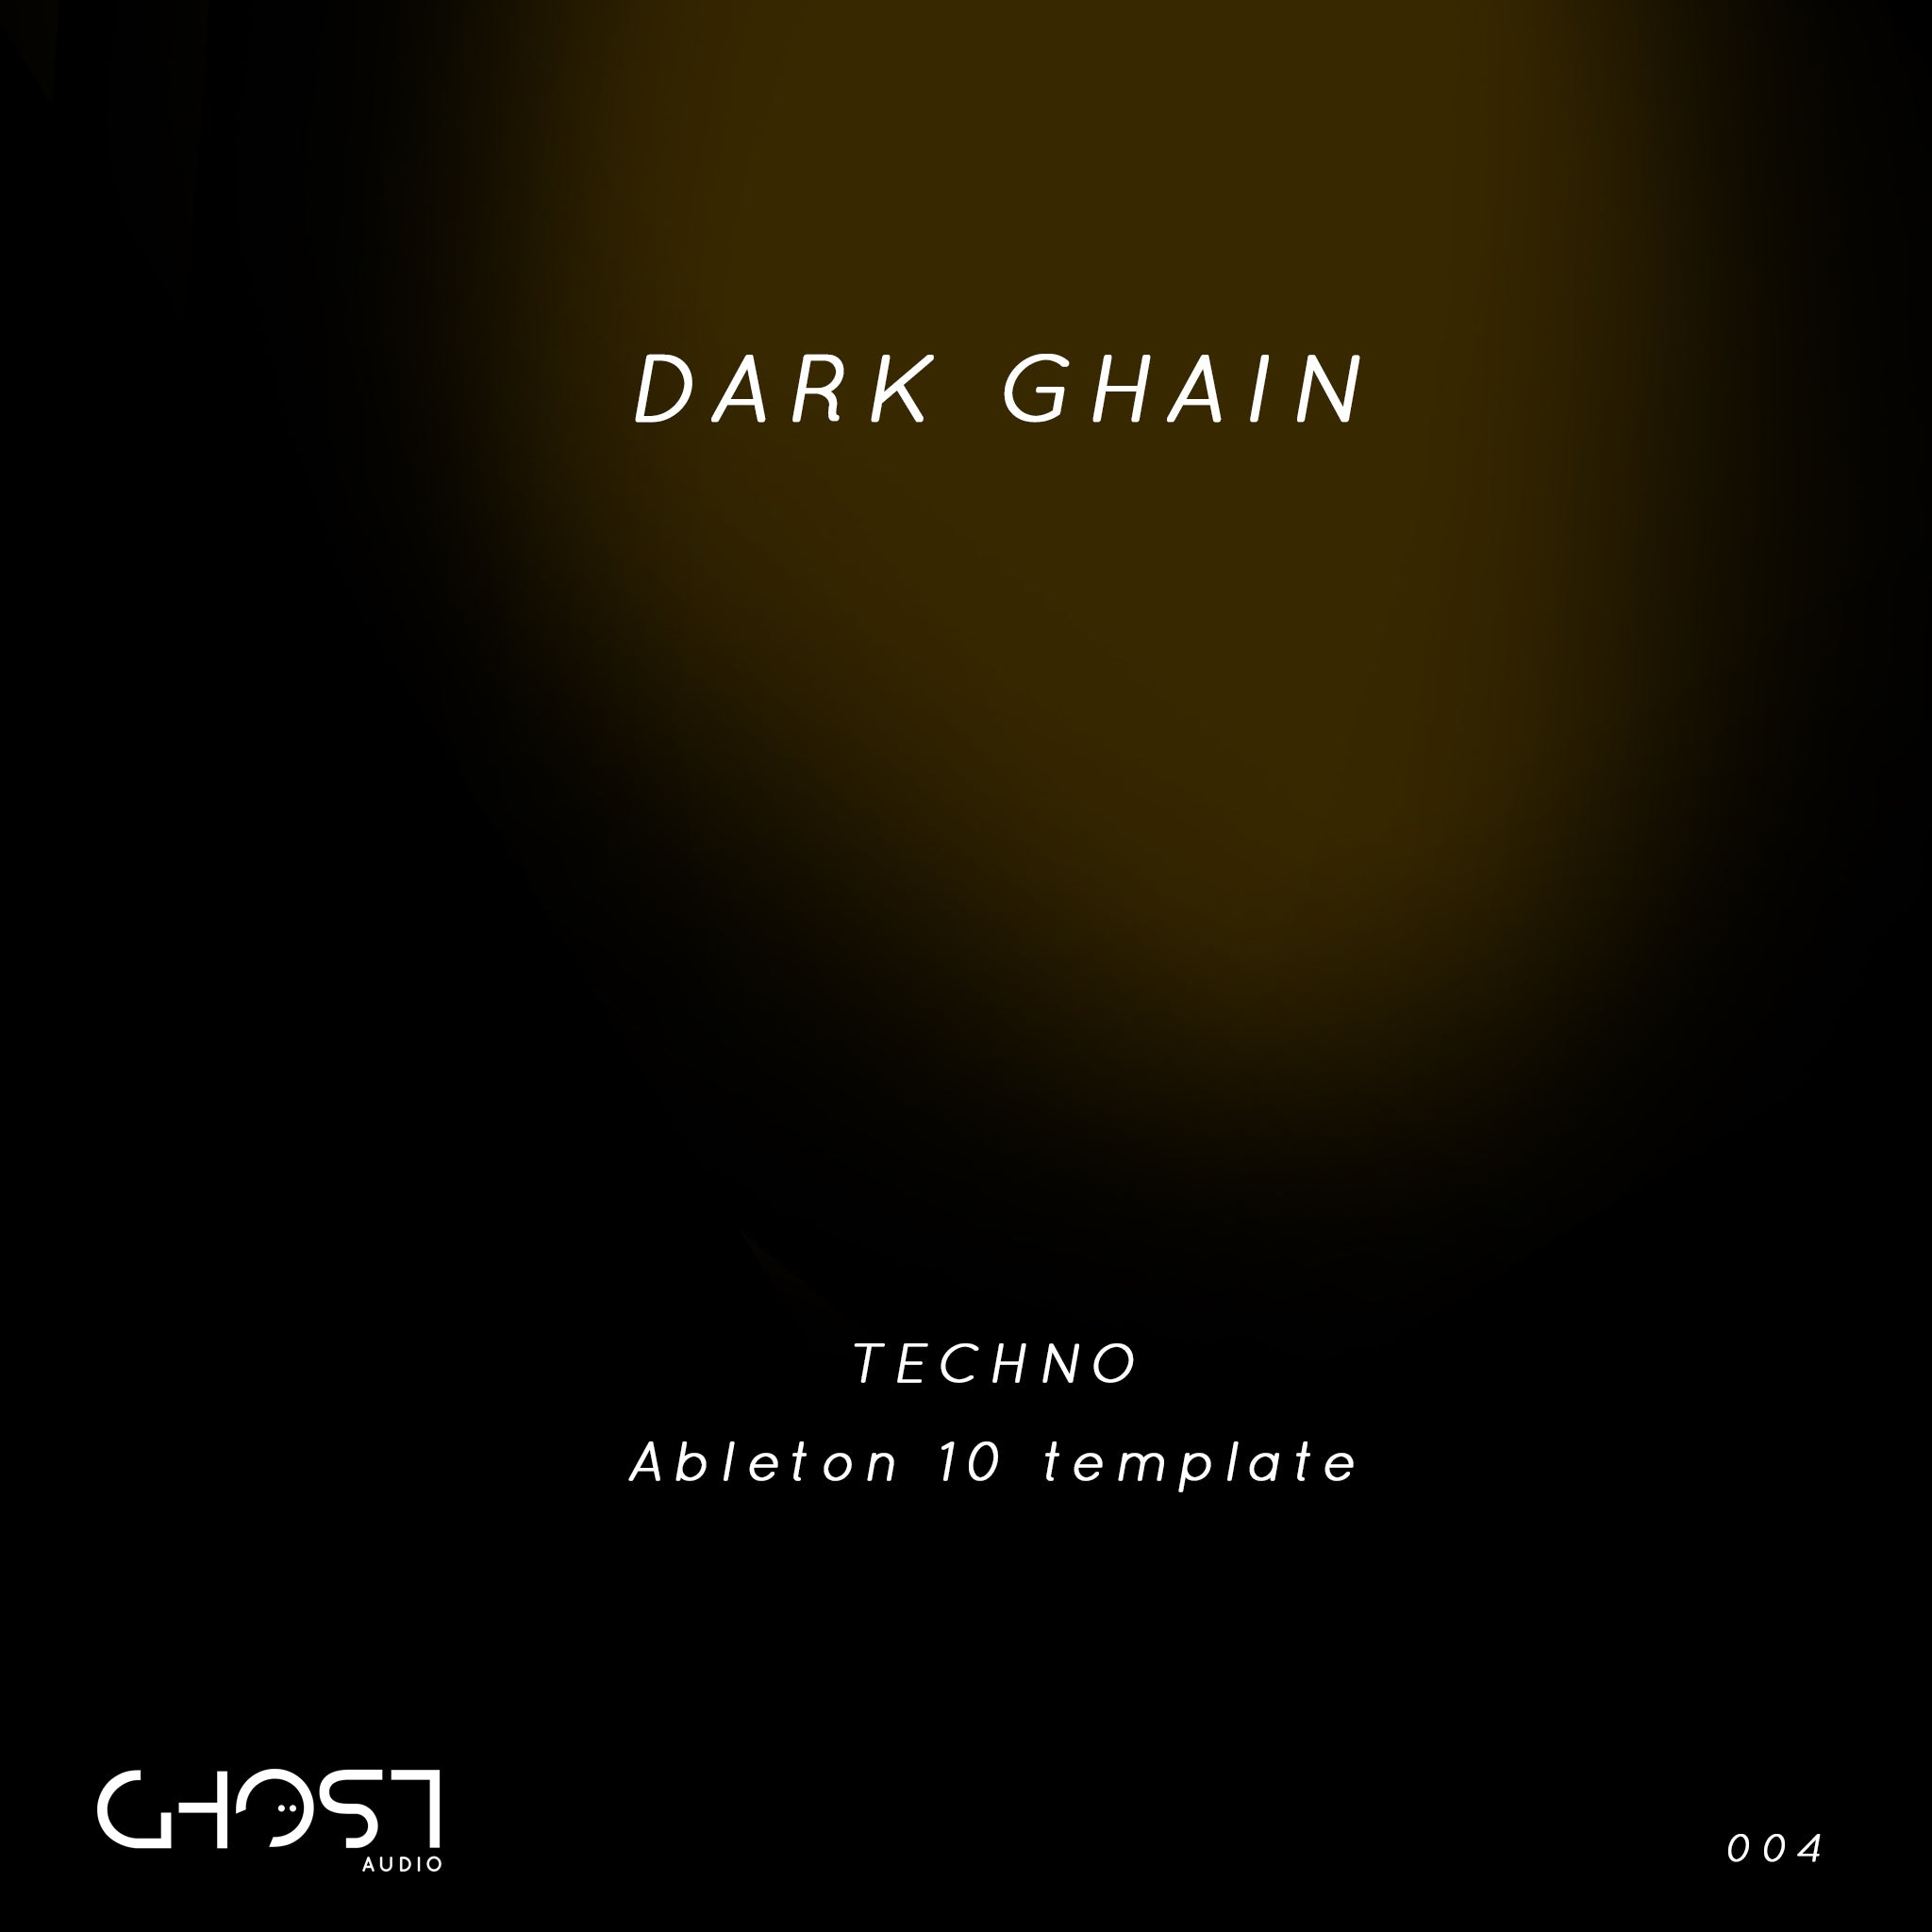 DARK GHAIN - TECHNO ( ABLETON 10 TEMPLATE )